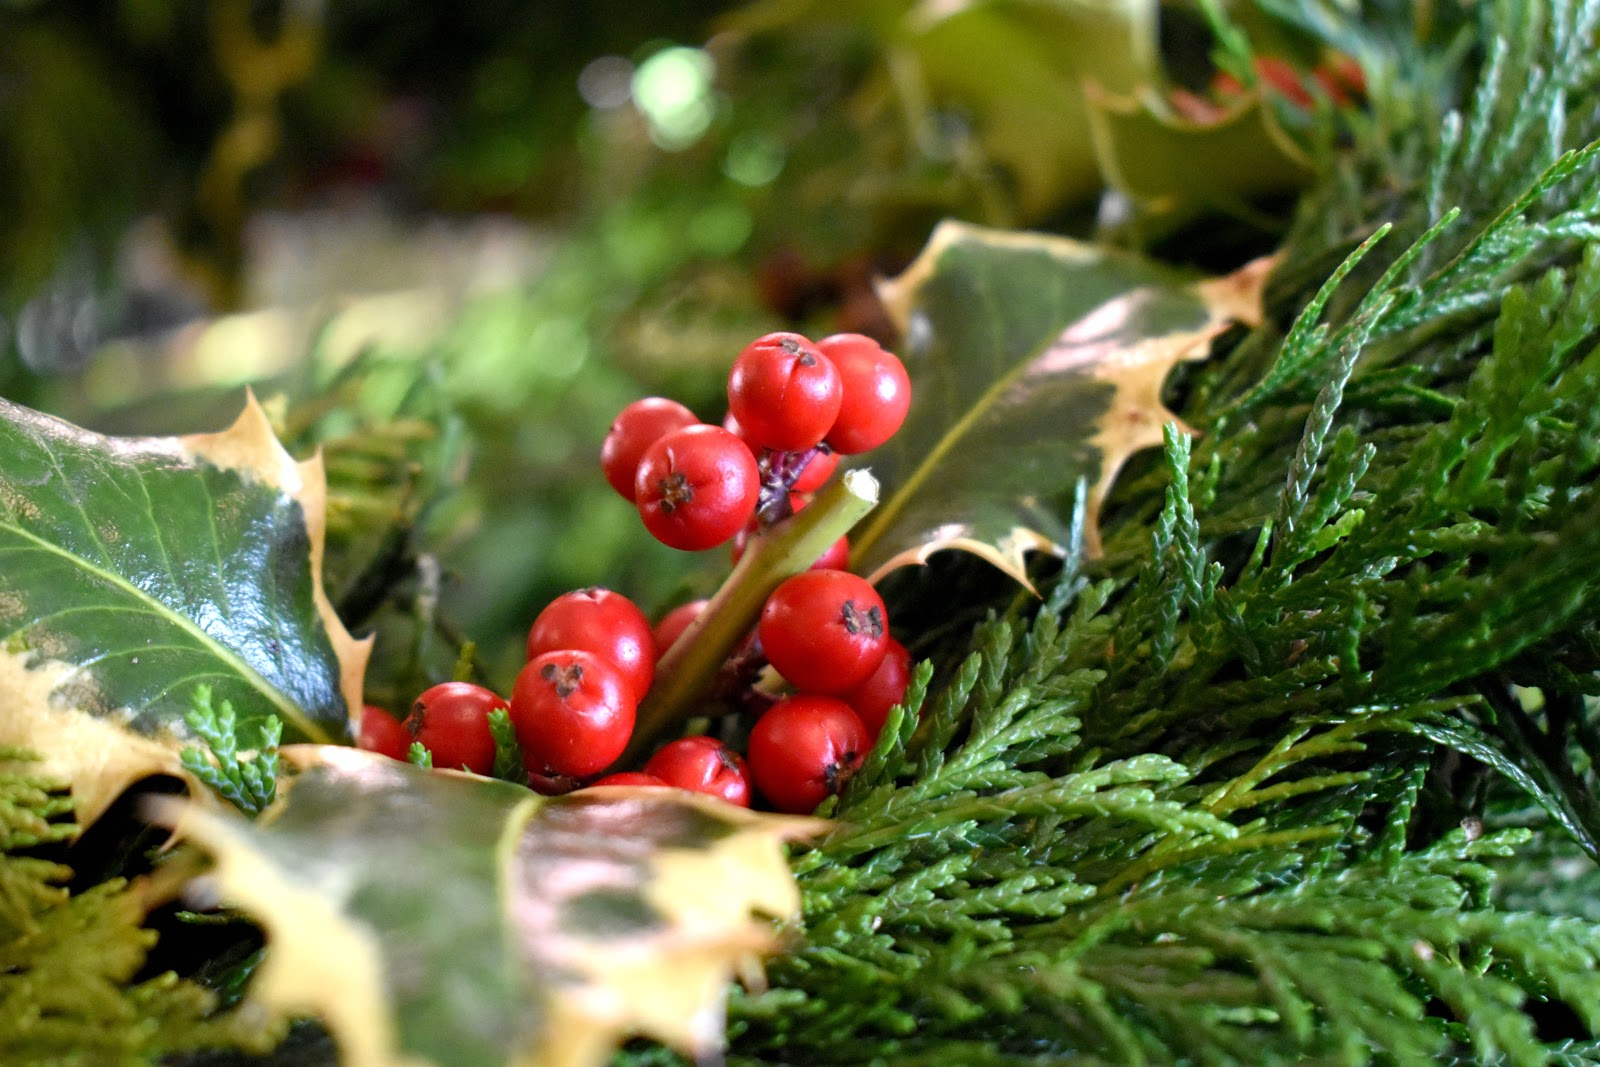 Christmas at Cragside - Wreath